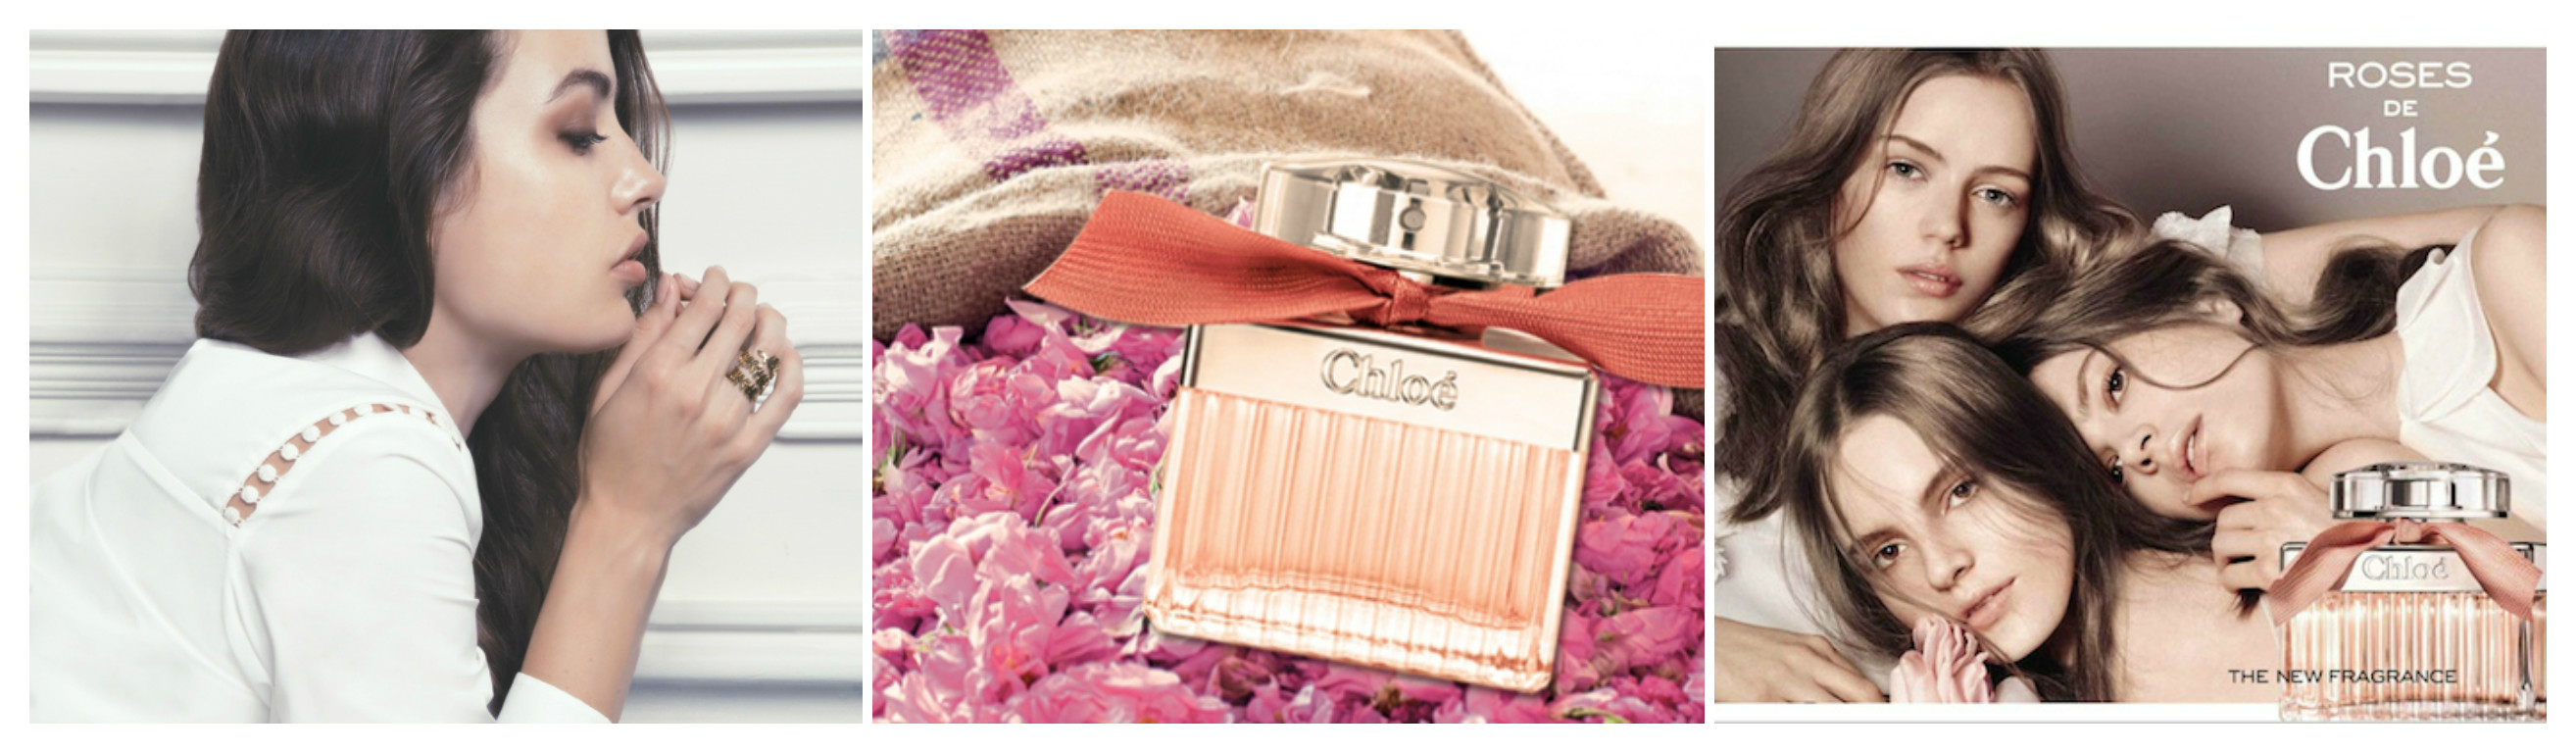 Perfume of the Day: Roses De Chloe by Chloe